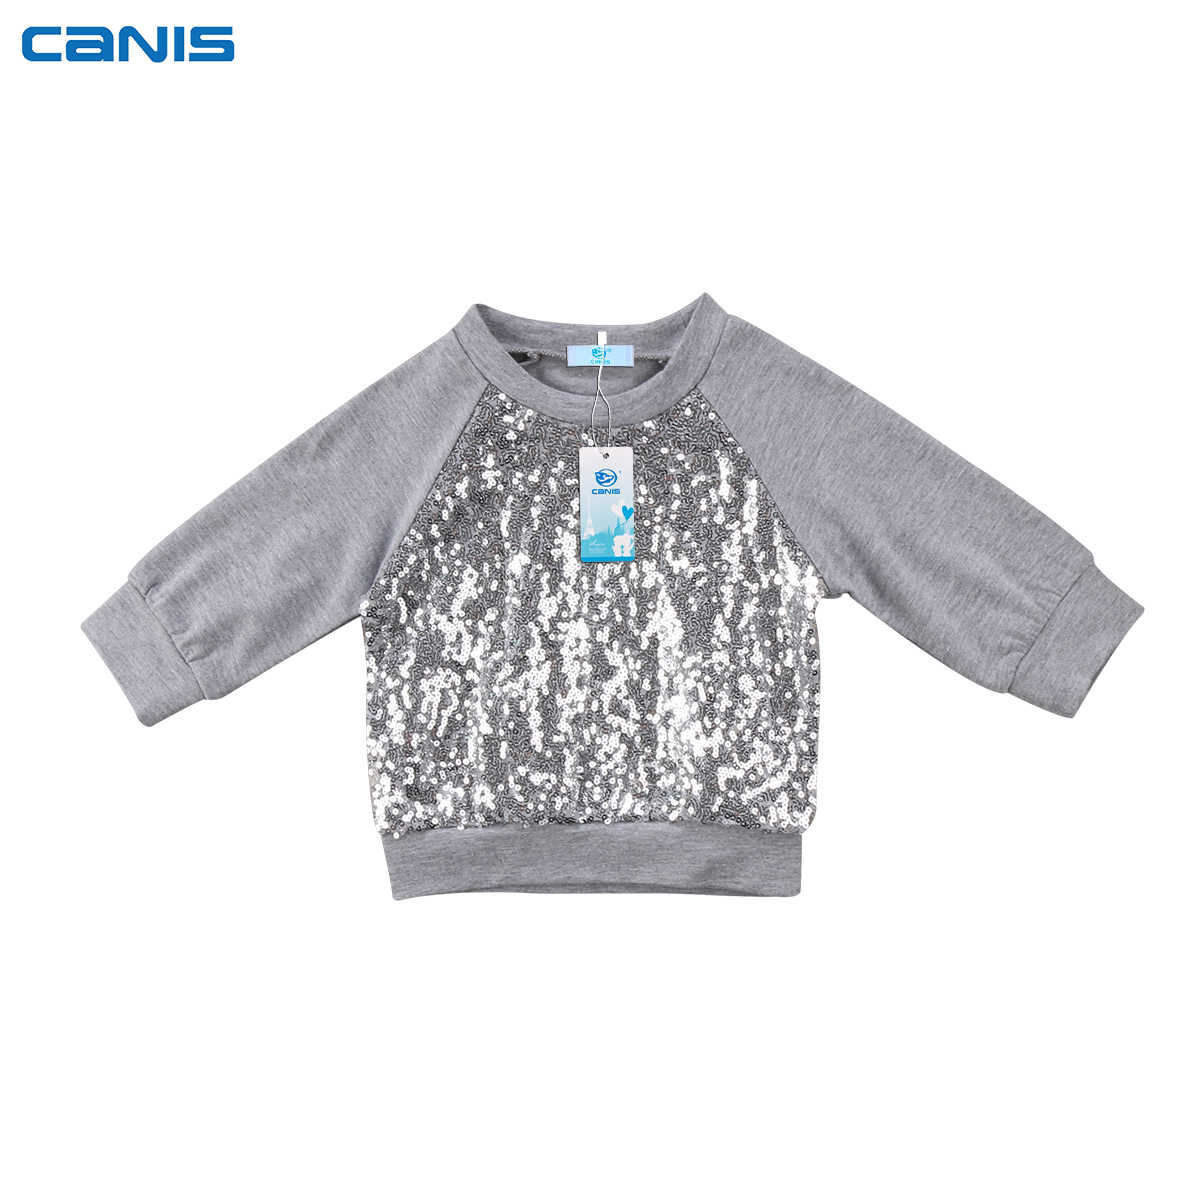 CANIS Newborn baby girl clothes Long Sleeve Top T-shirt Sweatshirt Outfits 0-24Months